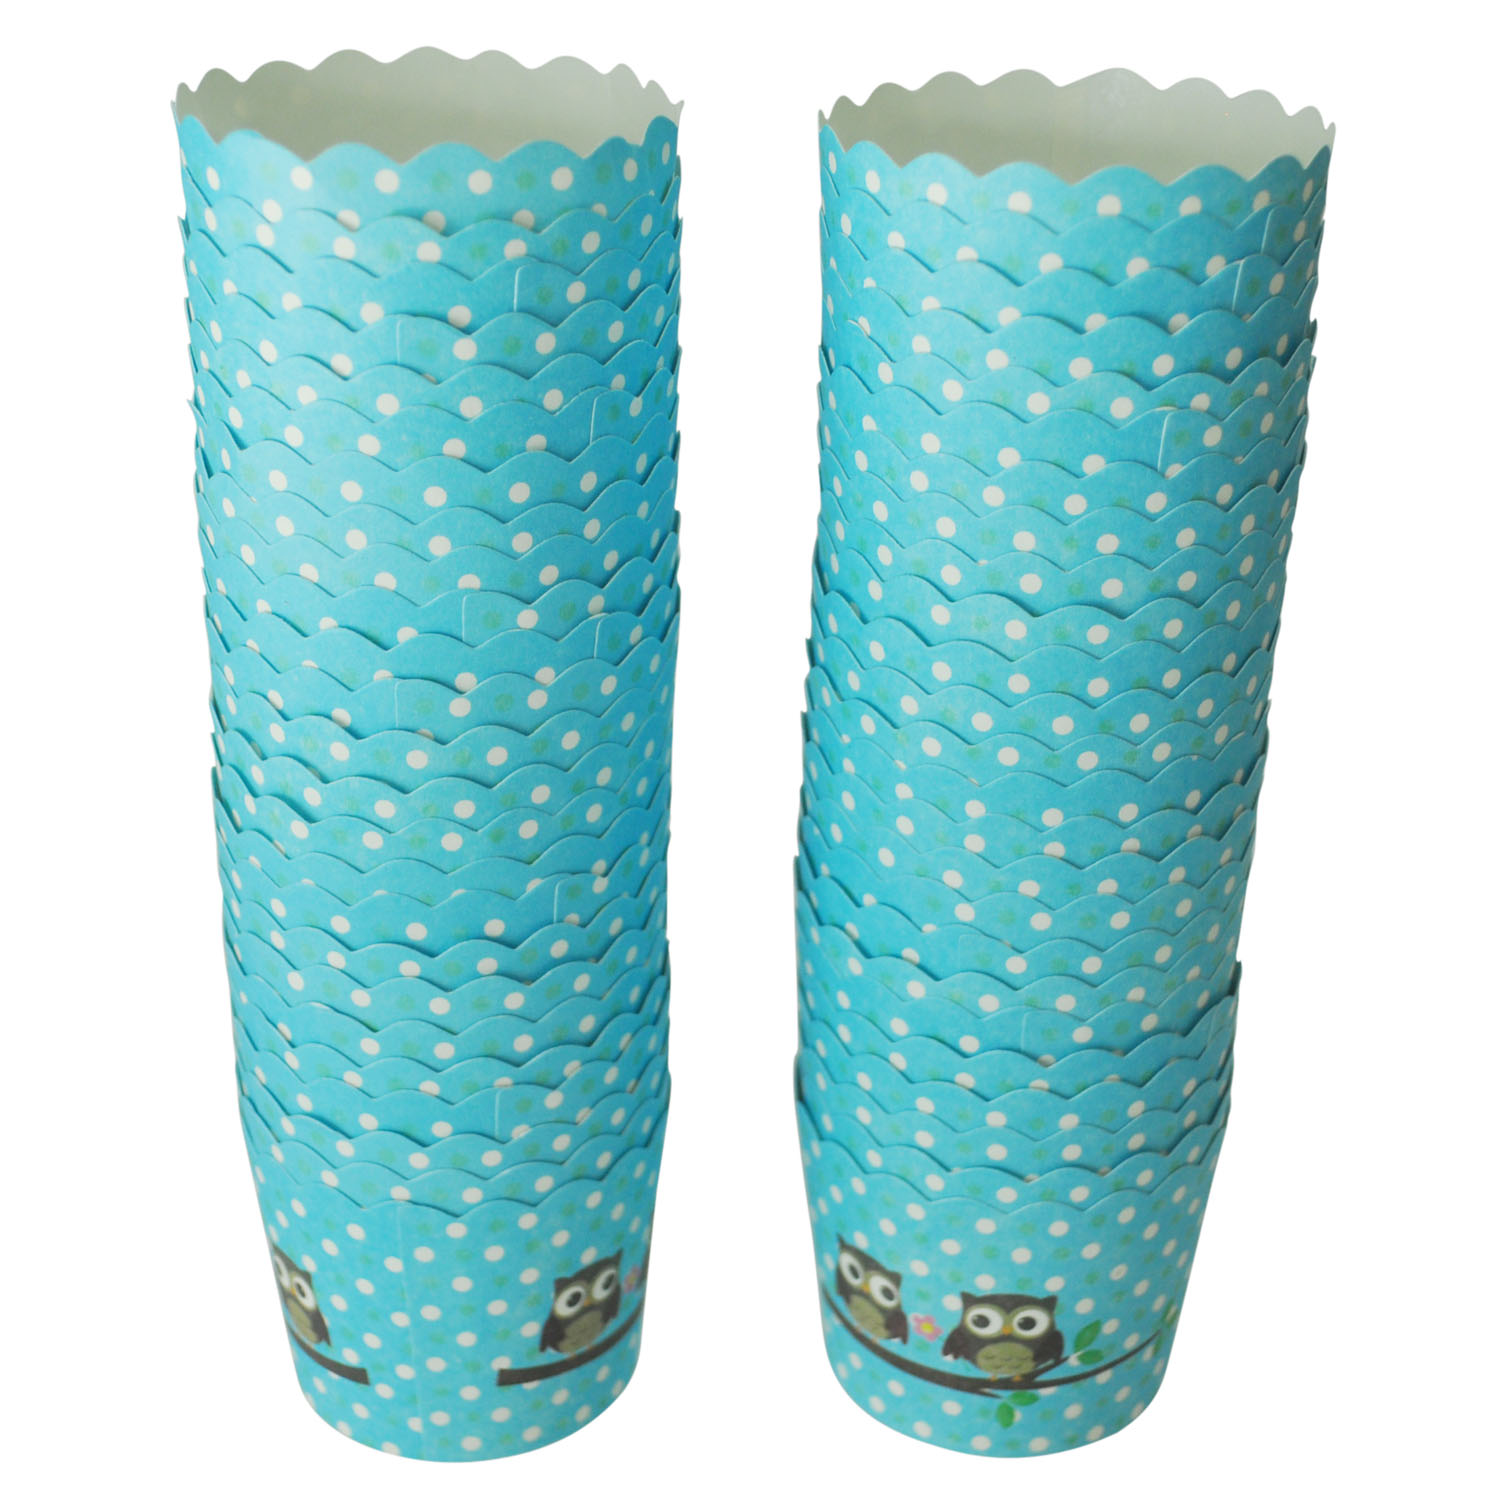 50X Blue Owl Printing Cupcake Paper Paper Cake Case Baking Cups Liner Muffin Dessert Baking Cup